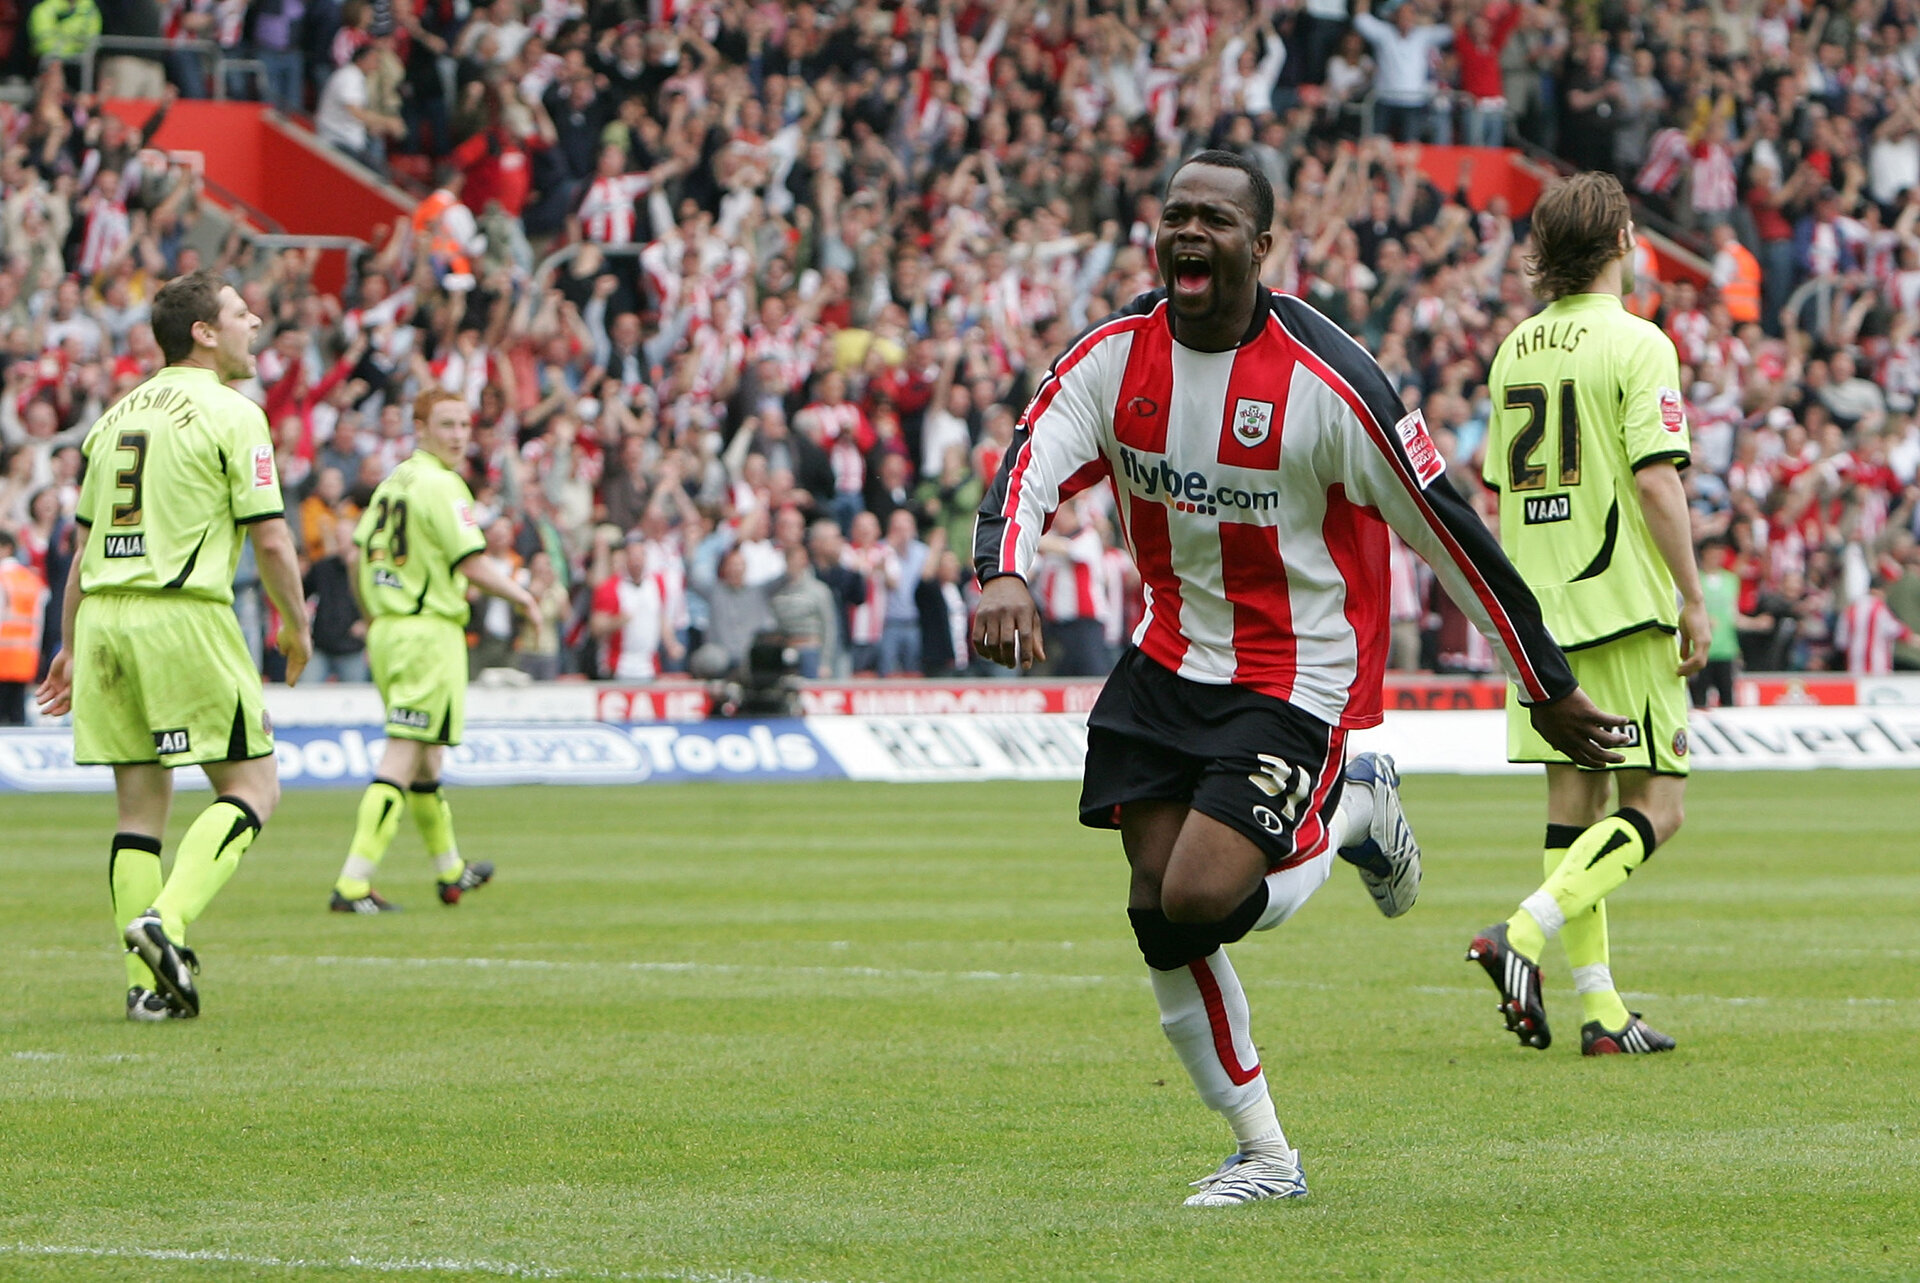 SOUTHAMPTON, UNITED KINGDOM - MAY 04:  Stern John of Southampton celebrates scoring their third and winning goal during the Coca-Cola Championship match between Southampton and Sheffield United at St Mary's Stadium on May 4, 2008 in Southampton, England.  (Photo by Christopher Lee/Getty Images)